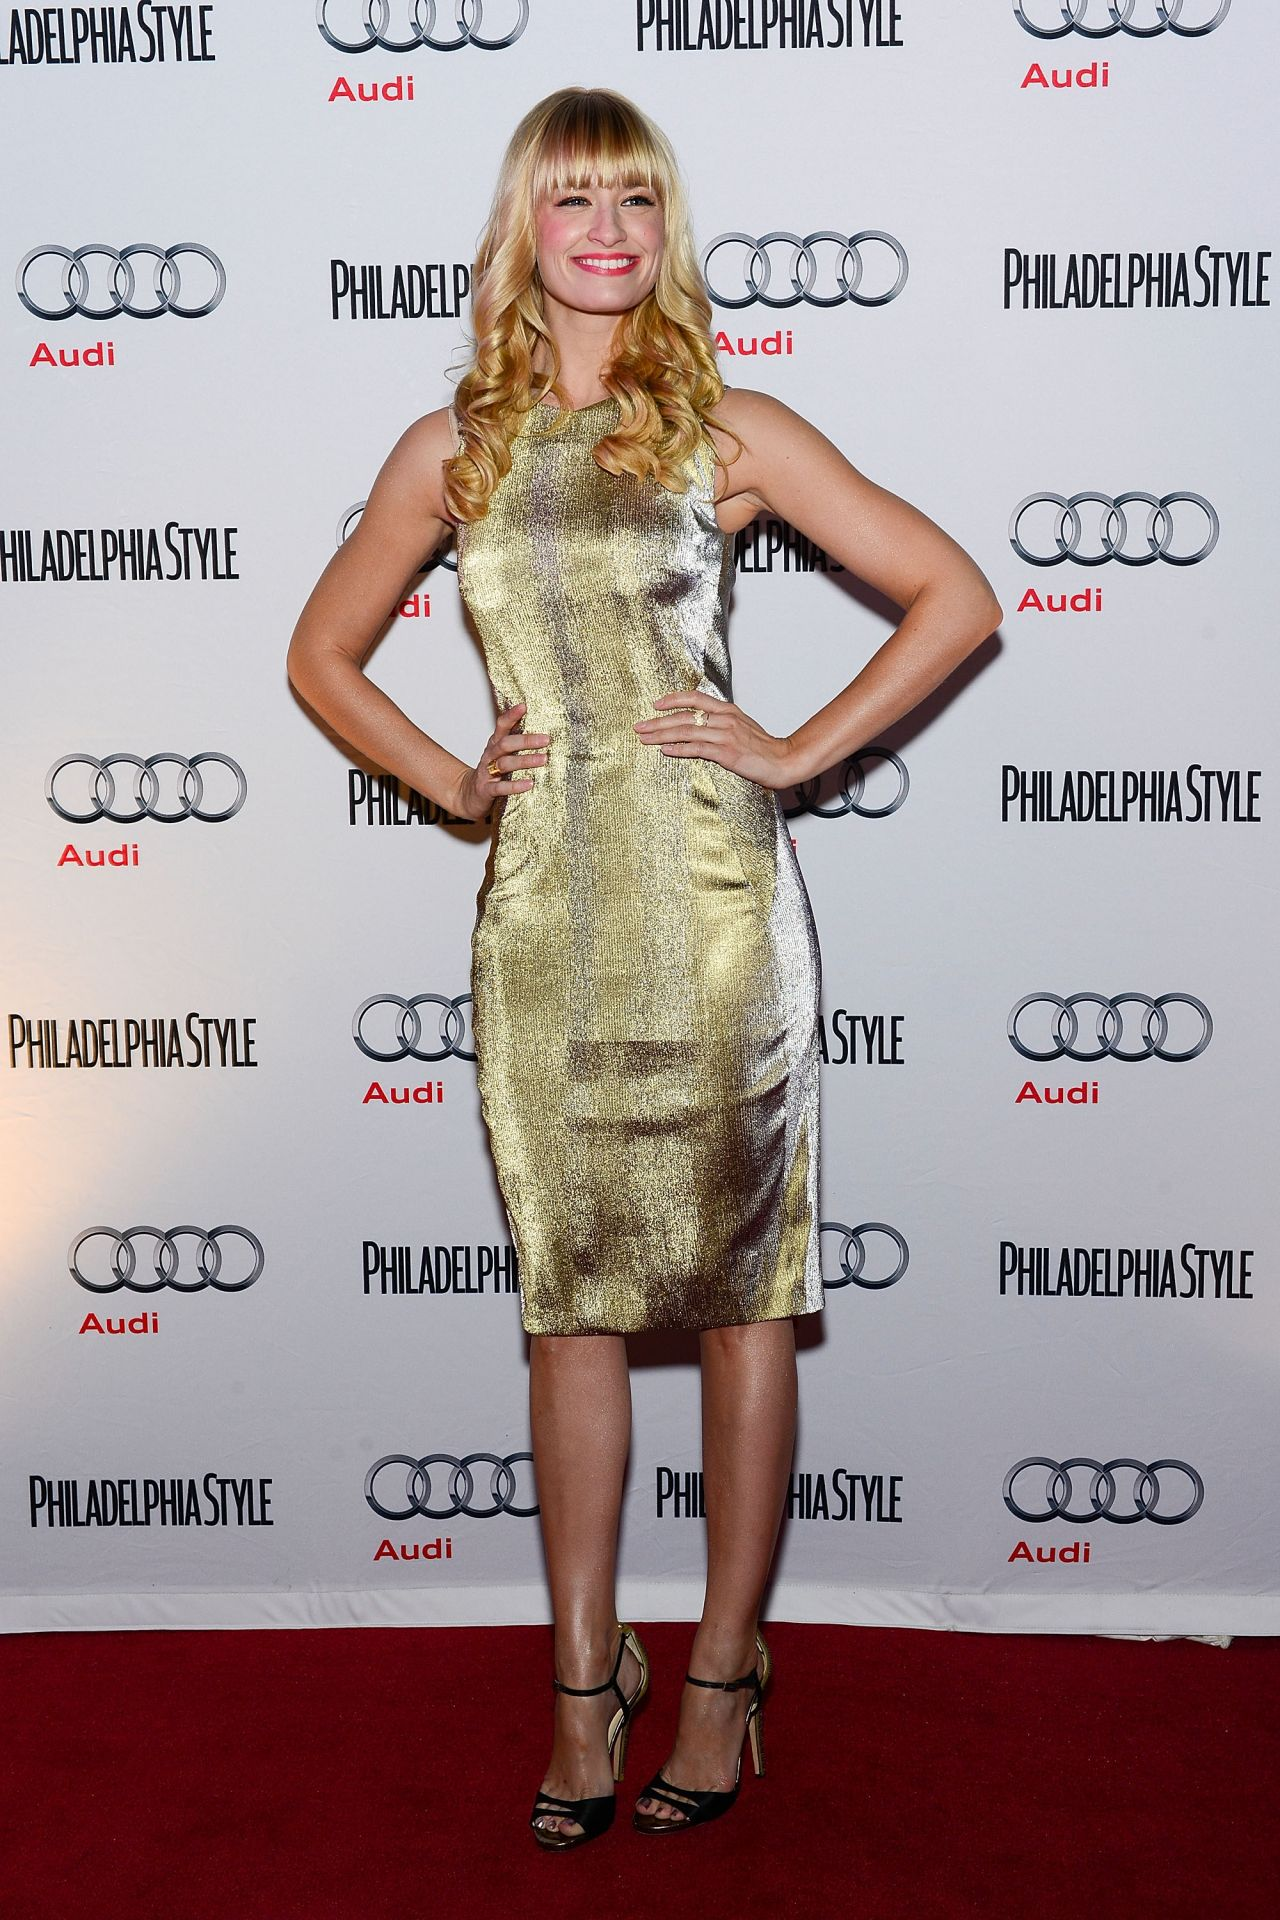 Beth Behrs - PHILADELPHIA STYLE Magazine Holiday Cover Event in Philadelphia - December 2013